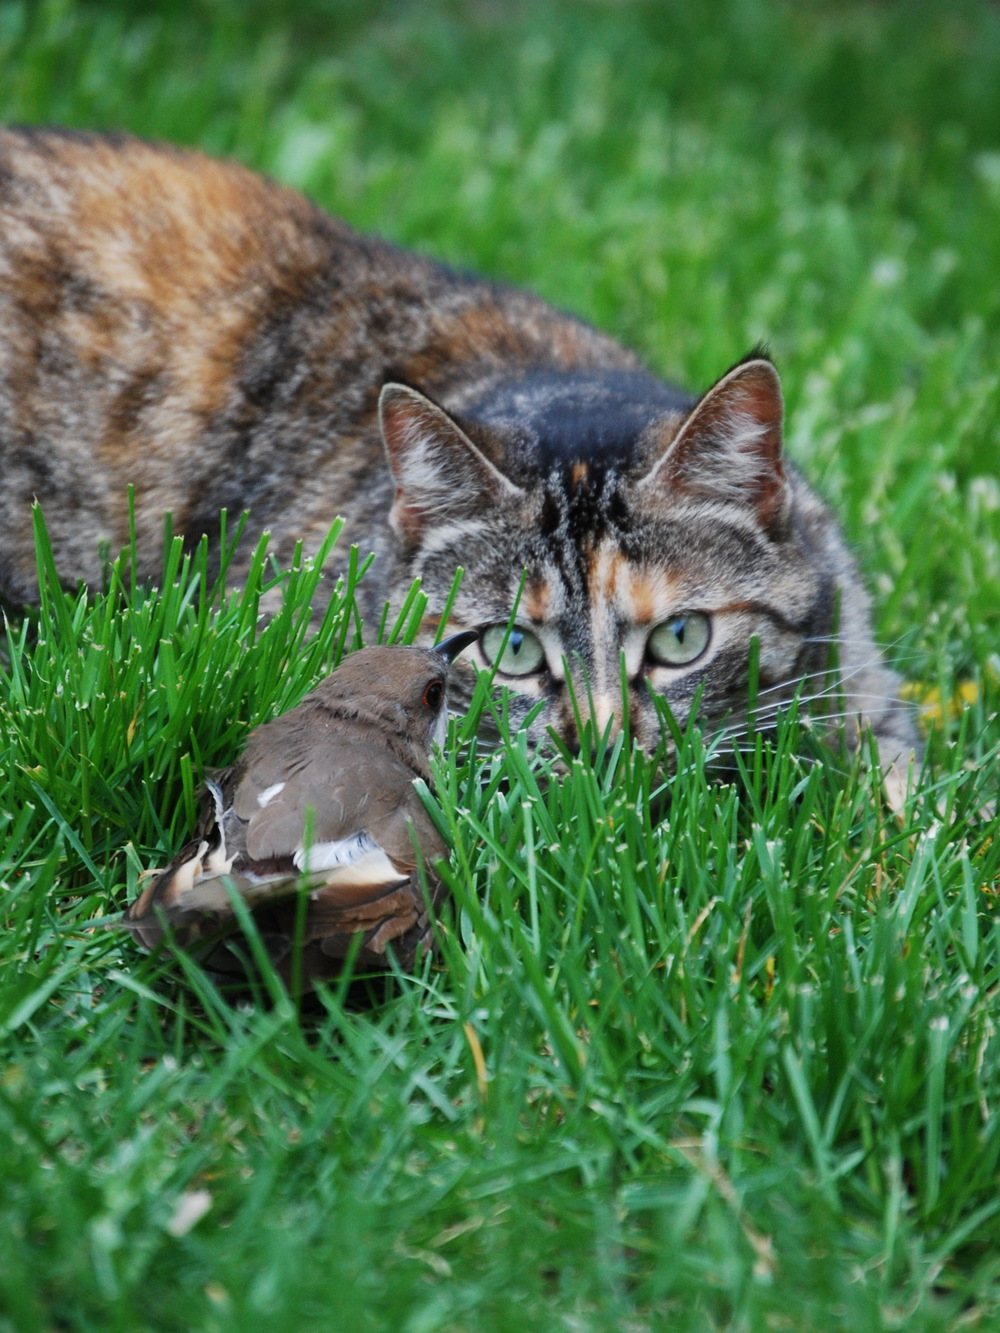 Cats kill millions of songbirds each year. Photo: Matthew Sakiestewa Gilbert